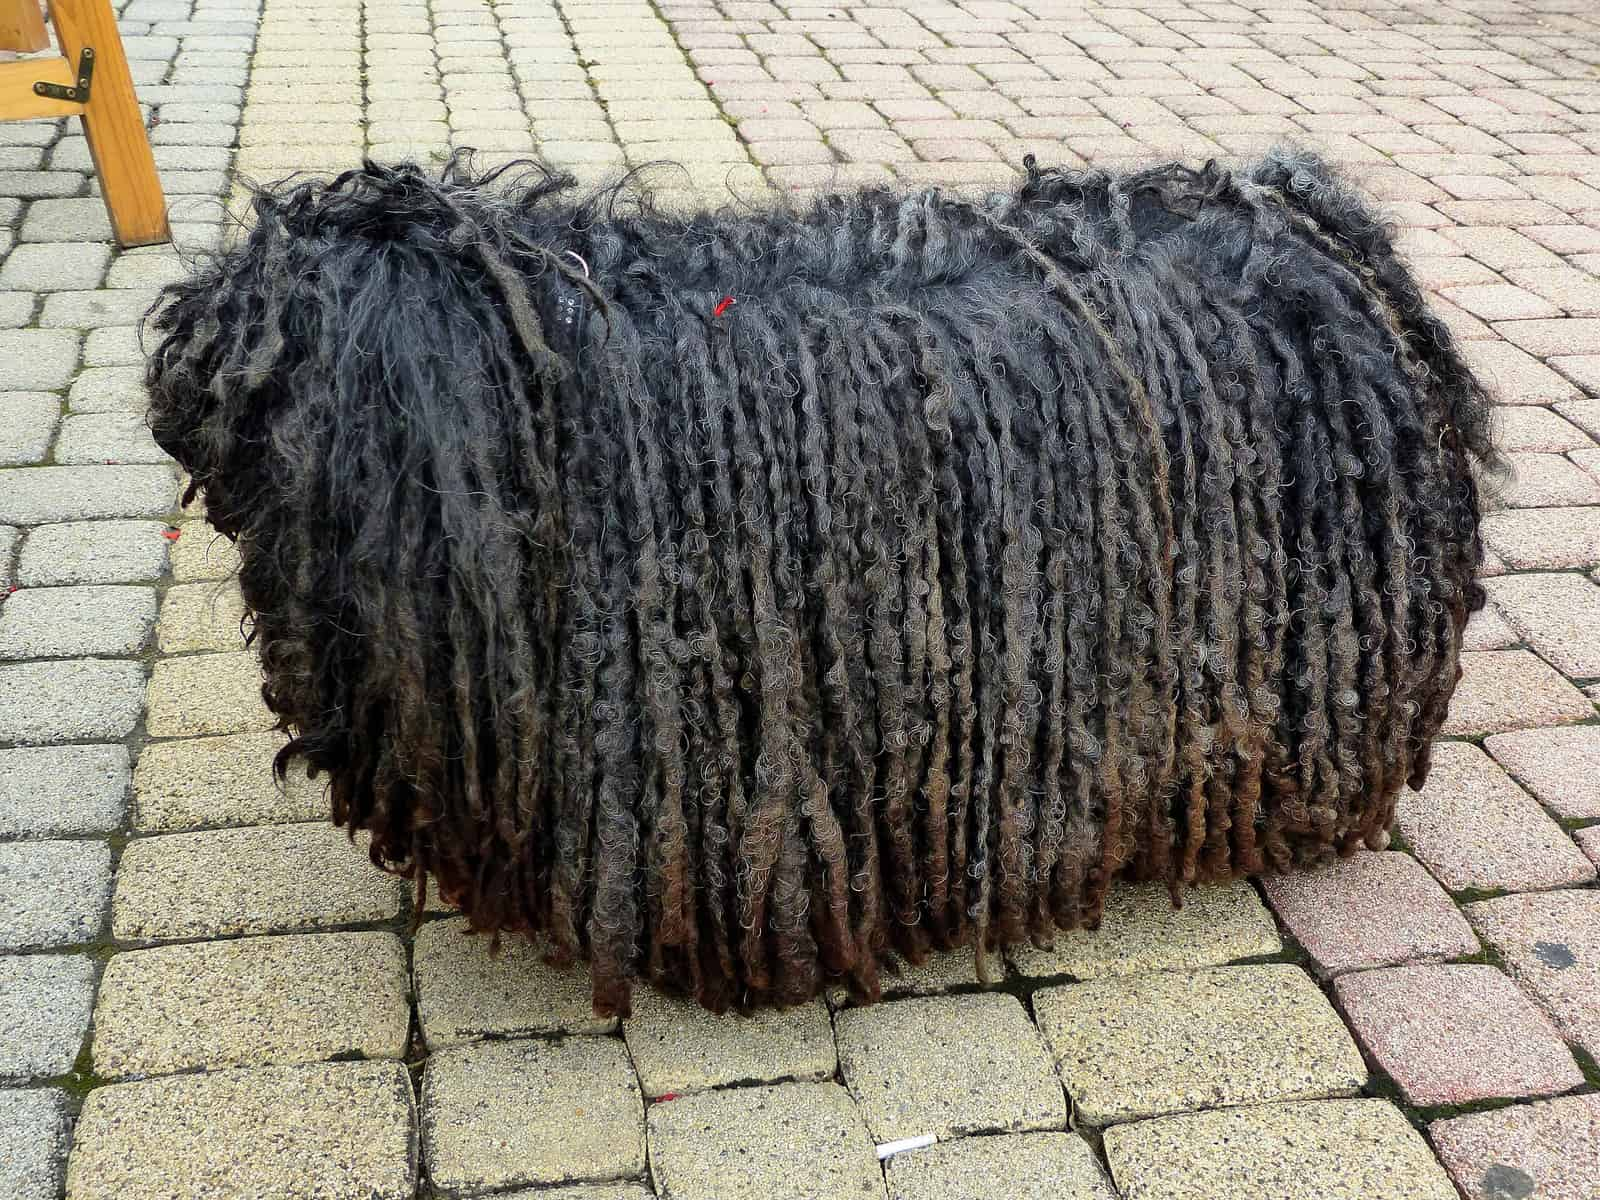 Puli with full-length cords standing on the street